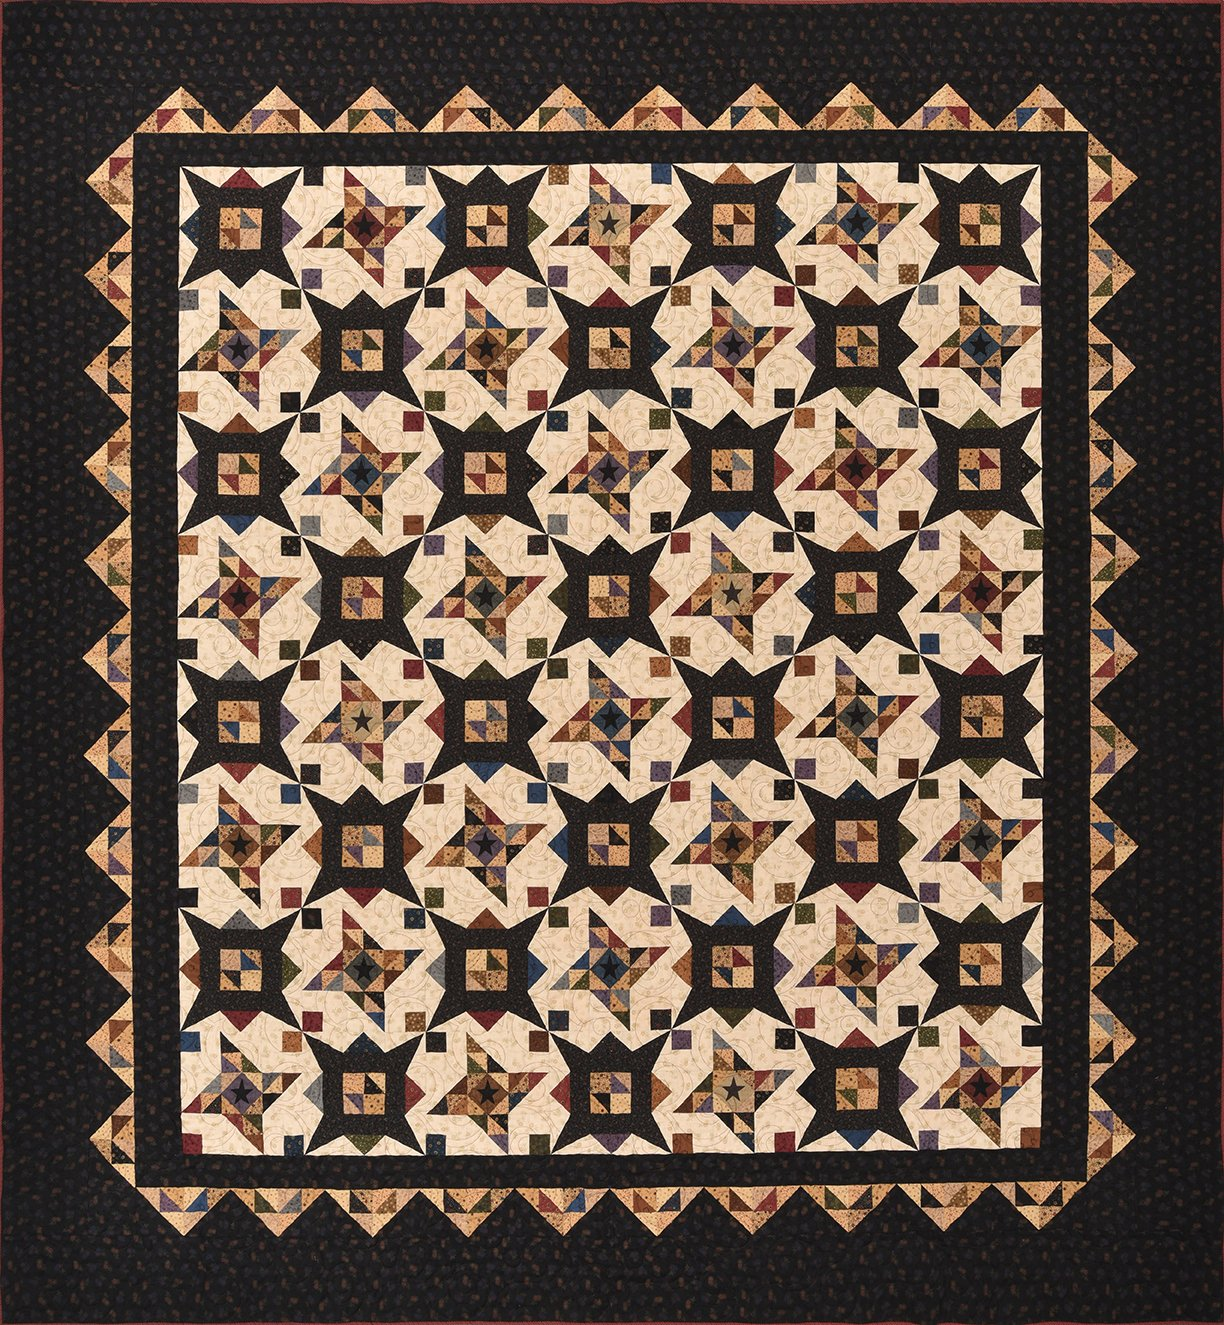 Primitive Traditions Quilt Pattern